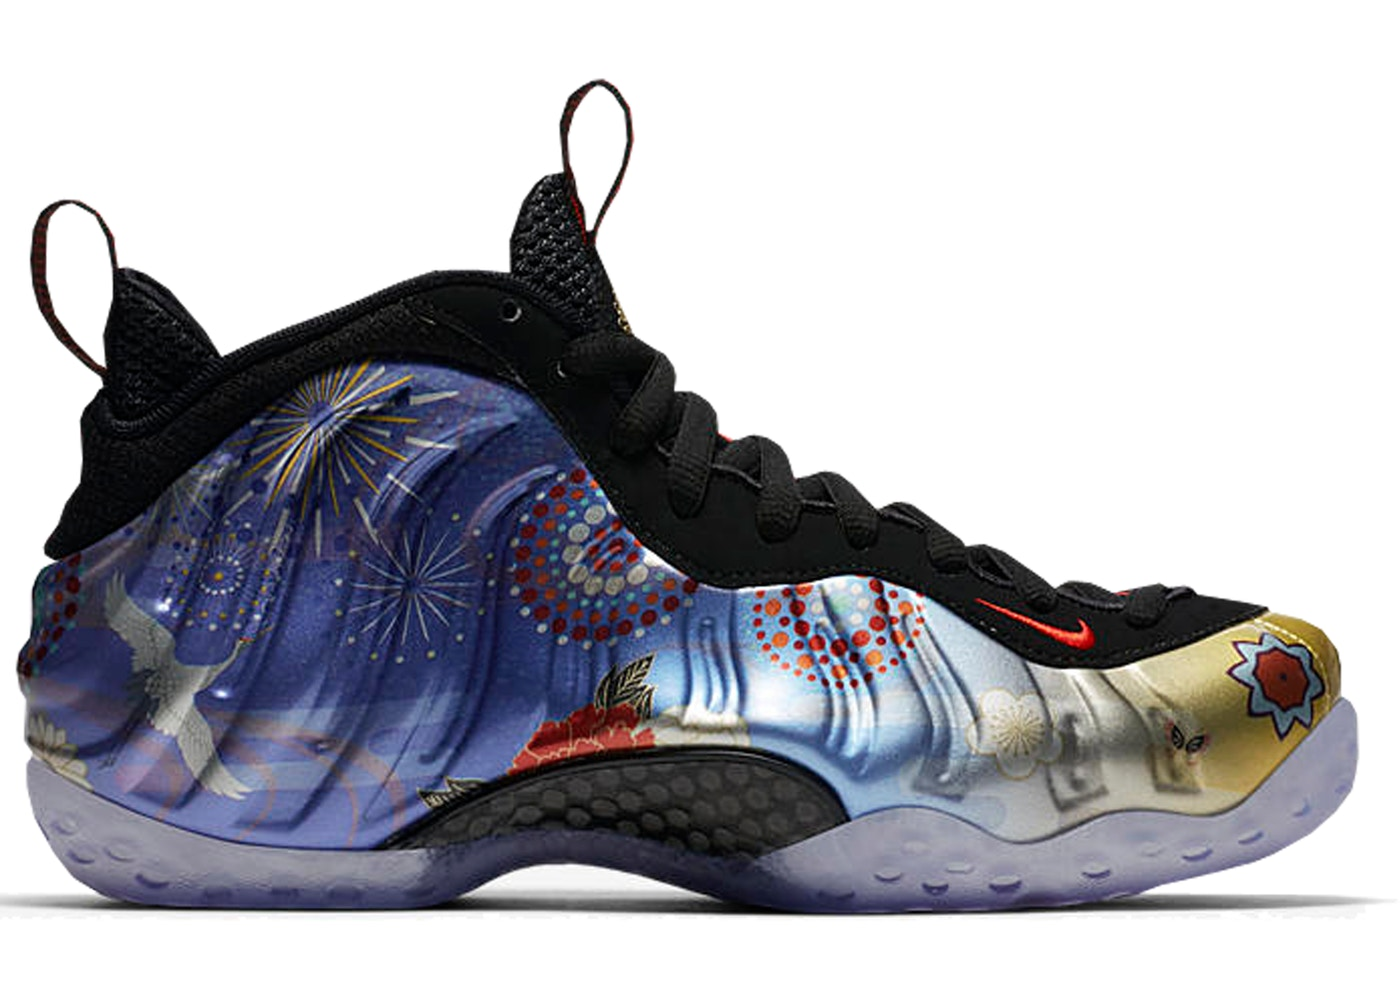 70e943dcb0d Air Foamposite One Lunar New Year 2018 (W) - AQ0566-001